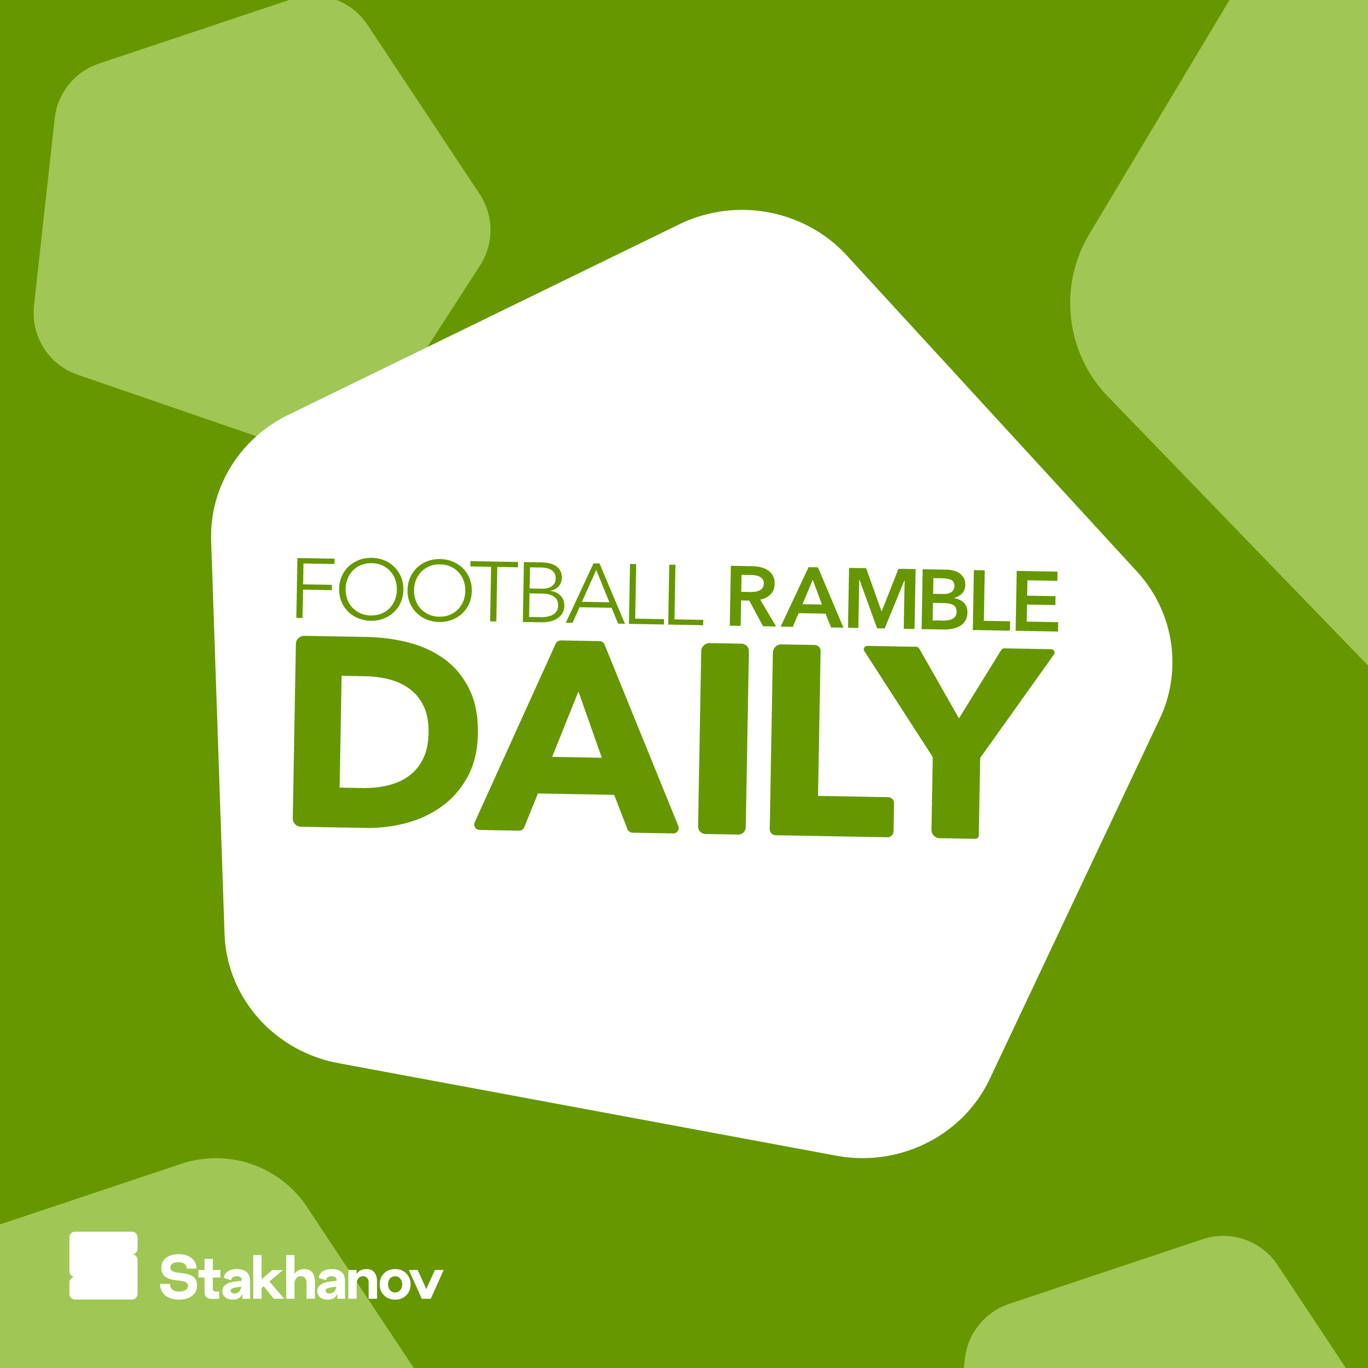 The artwork for the Football Ramble Daily podcast.